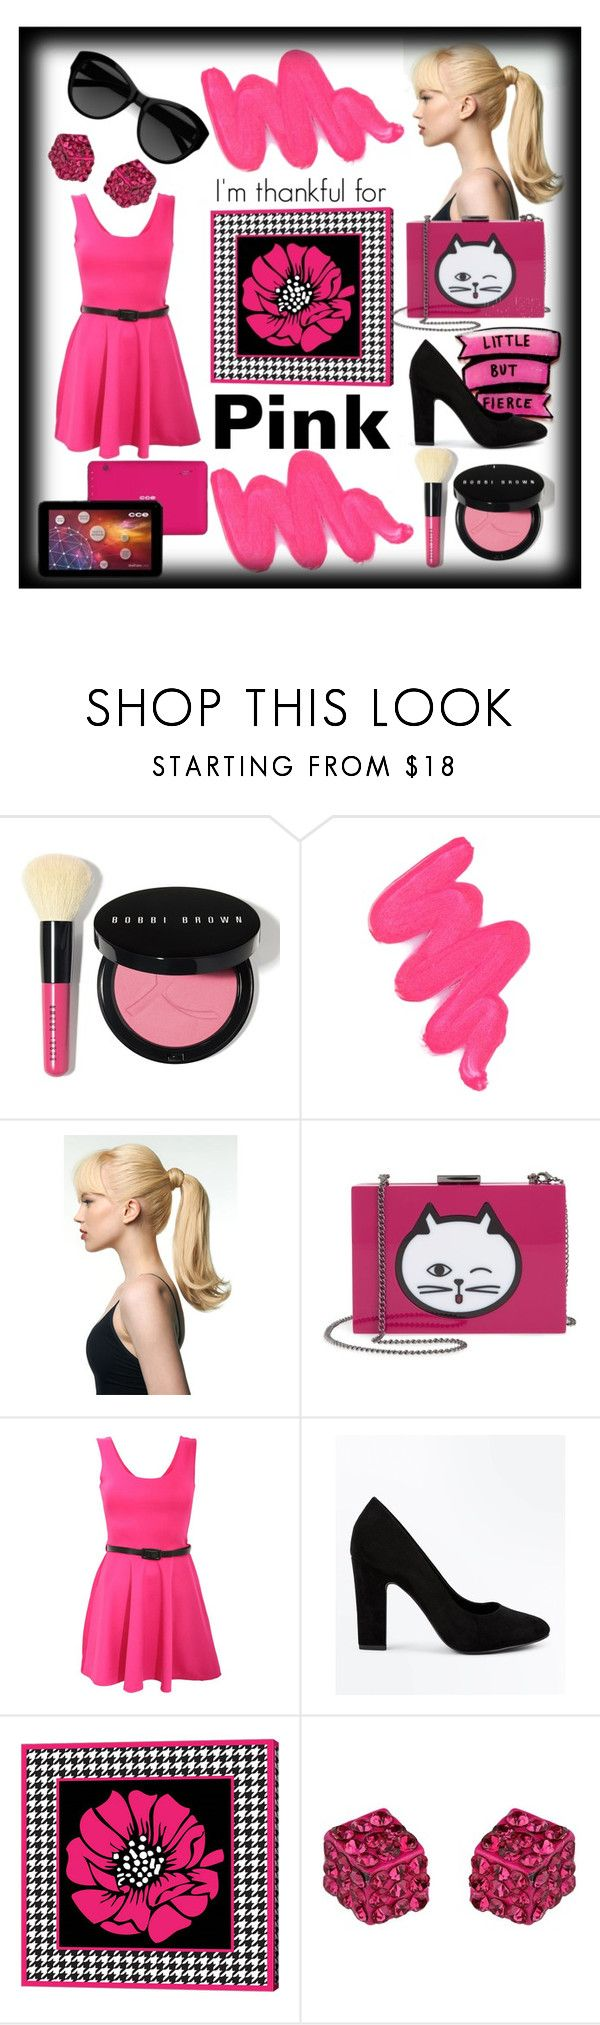 """Thankful Pink"" by akemiprincess ❤ liked on Polyvore featuring Bobbi Brown Cosmetics, Obsessive Compulsive Cosmetics, Toni&Guy, Nordstrom, Pilot, New Look, Carla Zampatti, House of Fraser and Tela Beauty Organics"